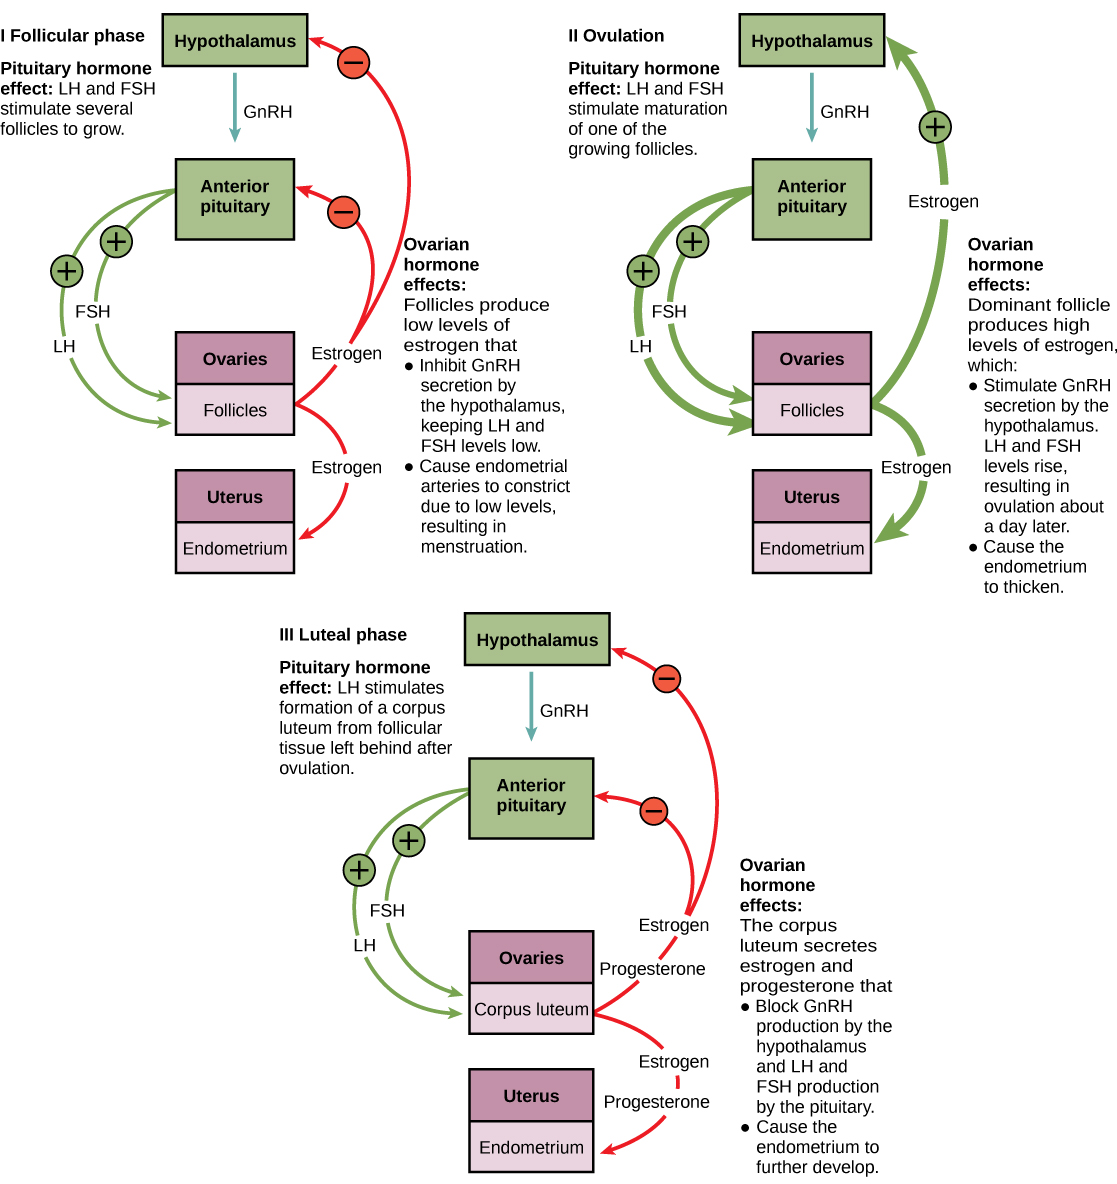 Human reproduction concepts of biology the ovarian and menstrual cycles of female reproduction are regulated by hormones produced by the hypothalamus pituitary and ovaries gamestrikefo Choice Image